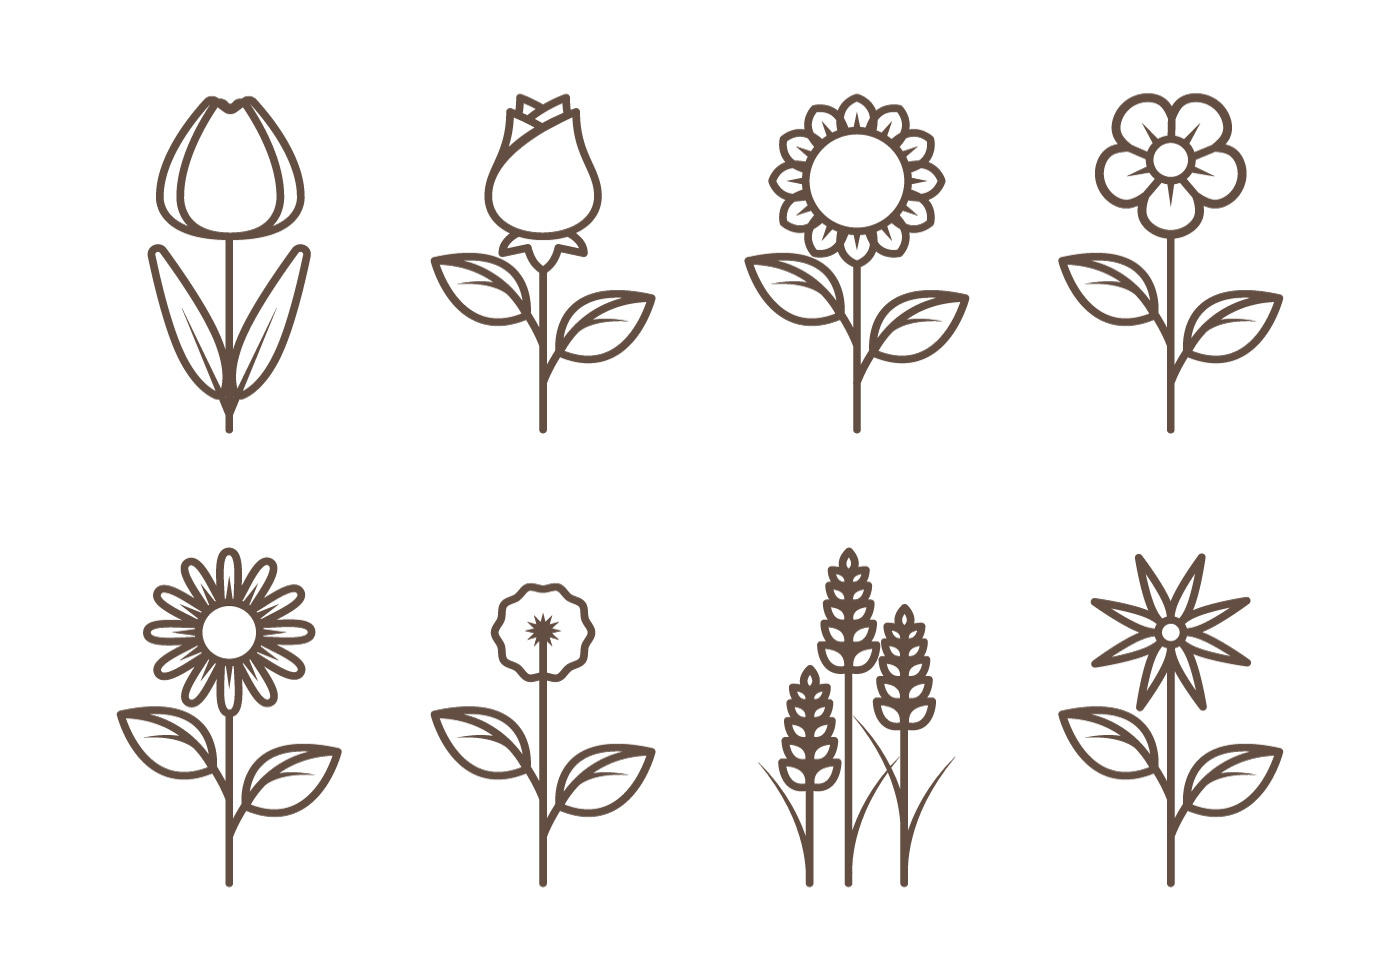 Download Free Vectors, Clipart